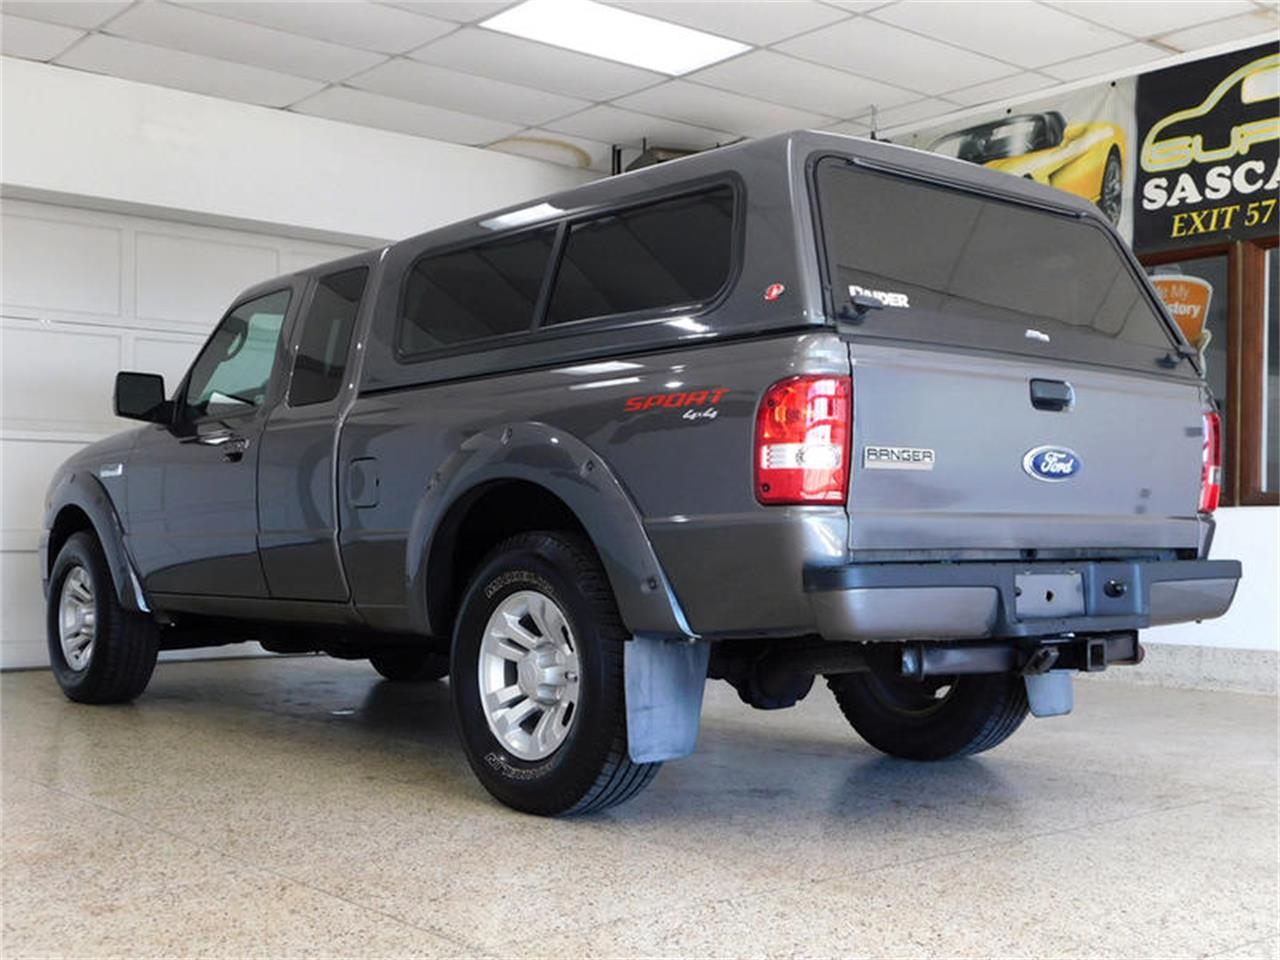 Large Picture of '11 Ranger located in Hamburg New York - $16,977.00 - Q0A9